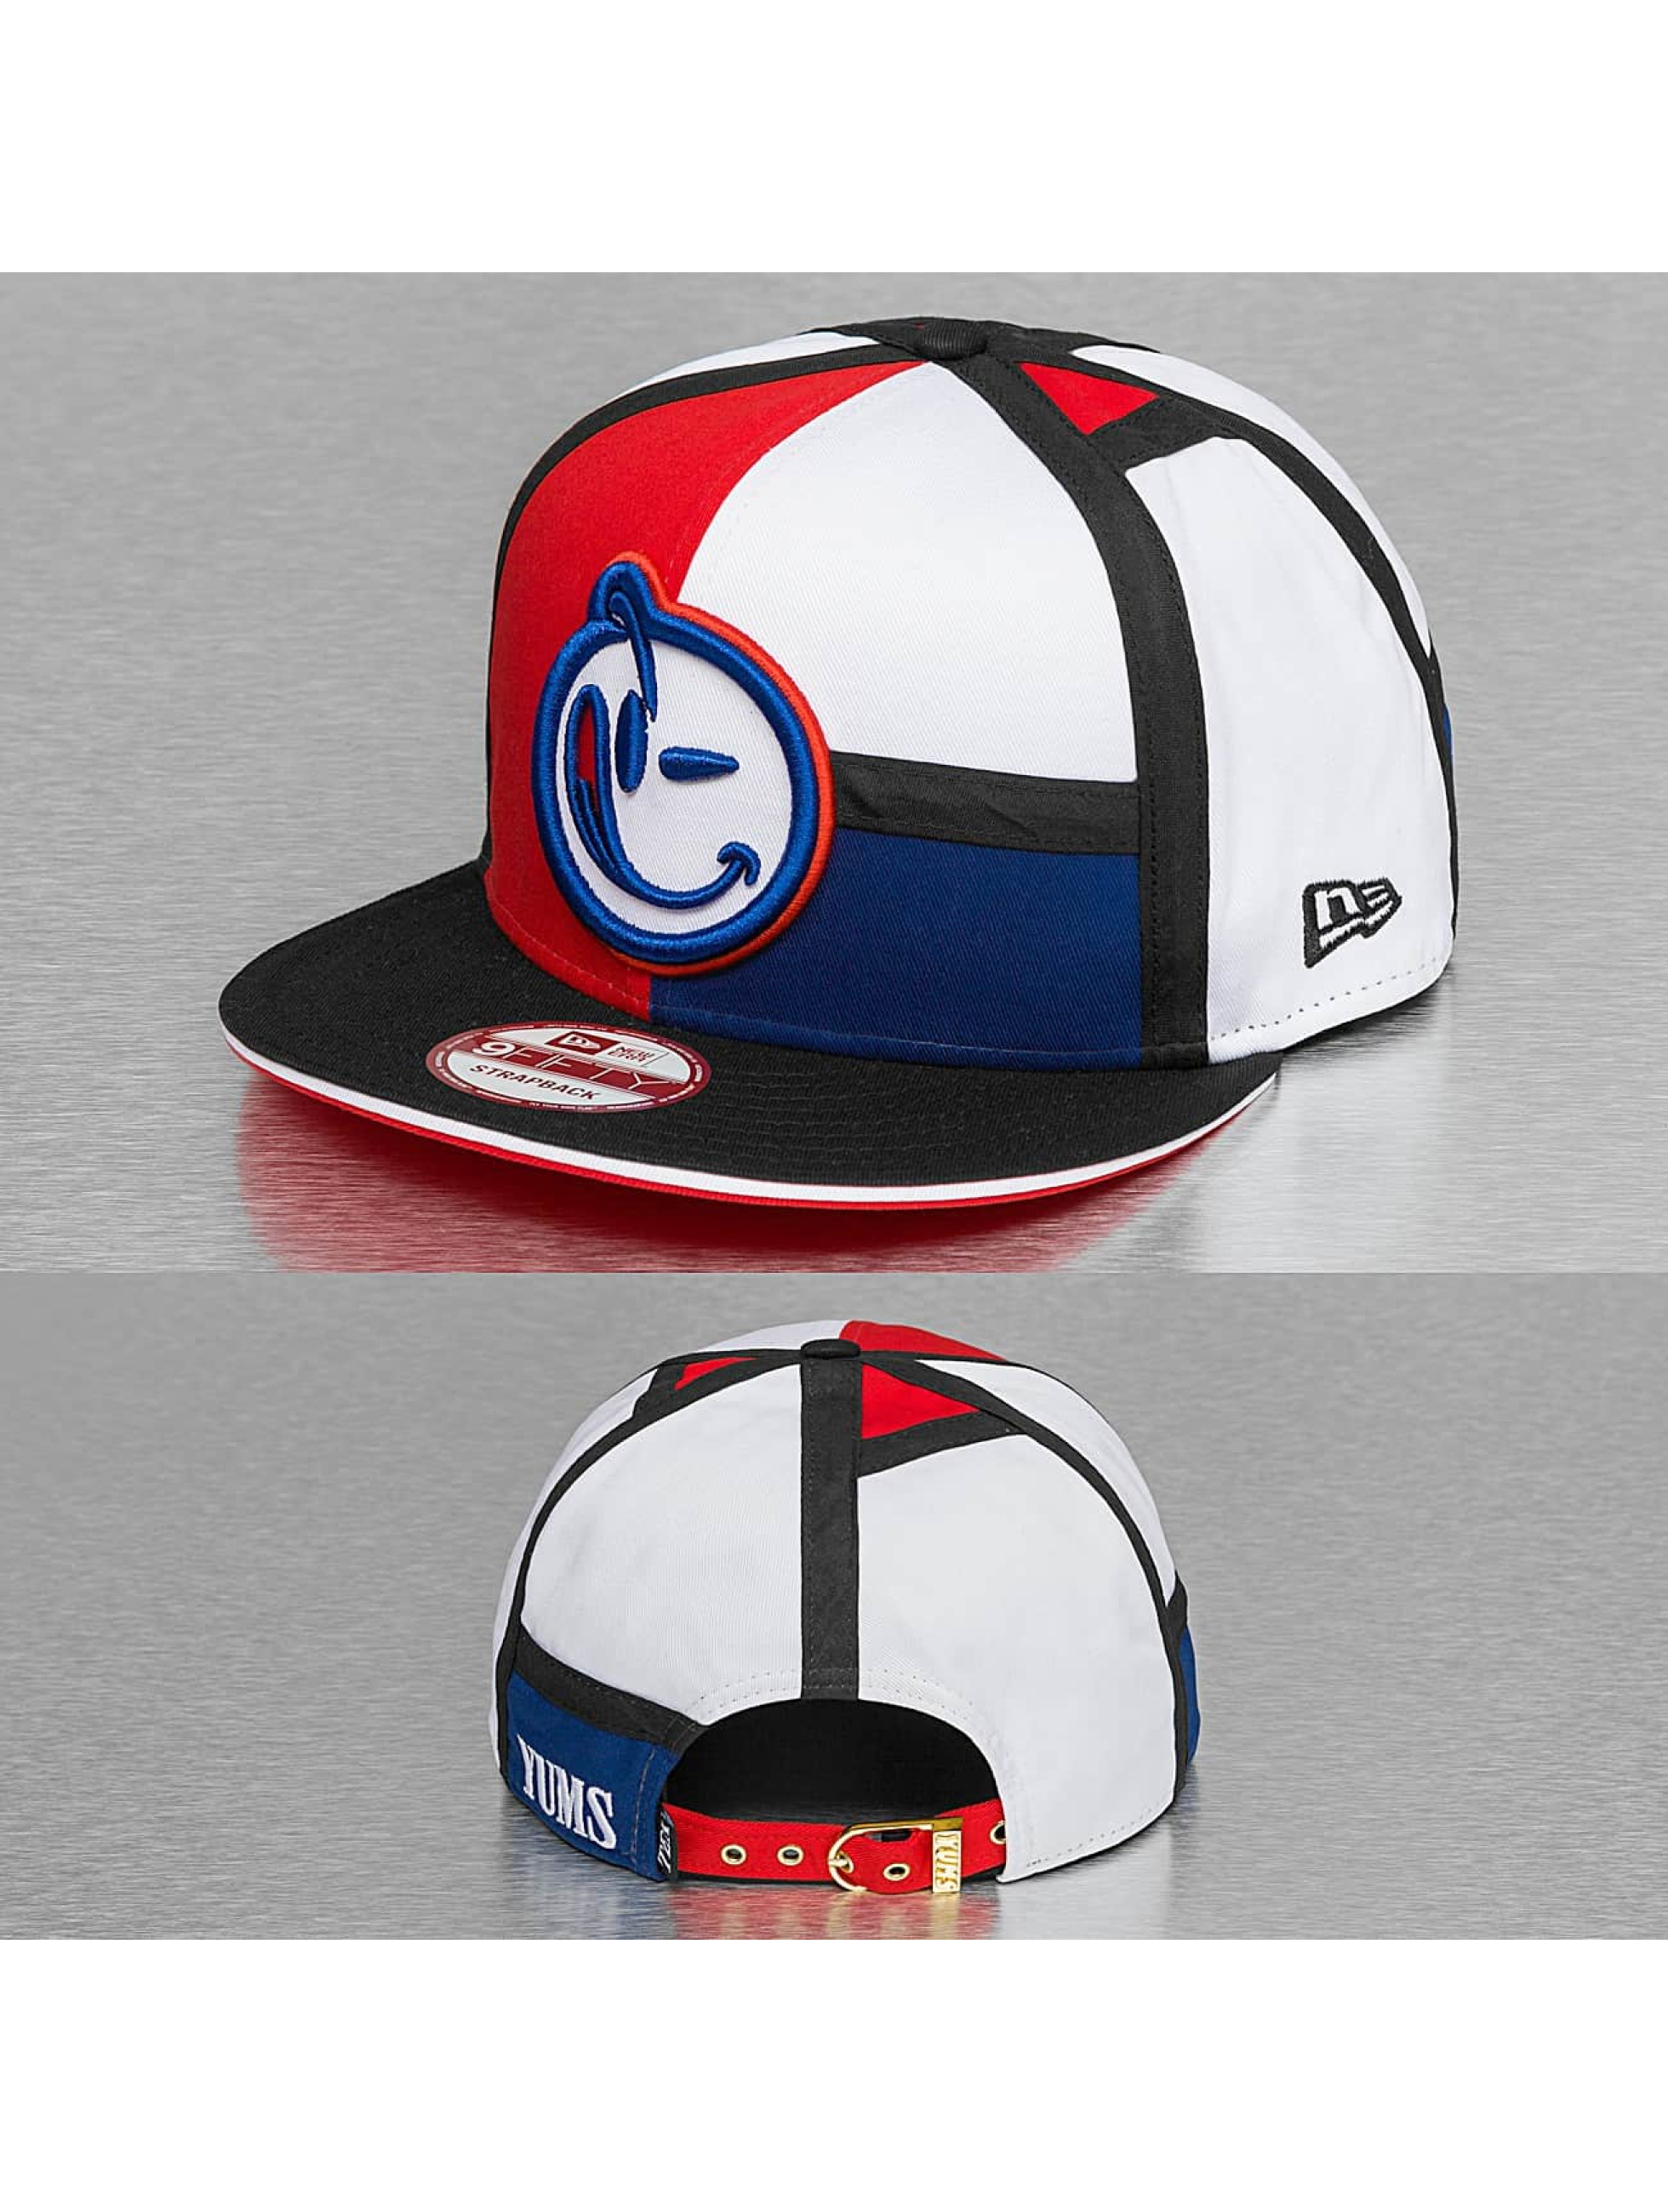 Yums New Era Black Tag Couture Strapback Cap Red/White/Blue/Black Sale Angebote